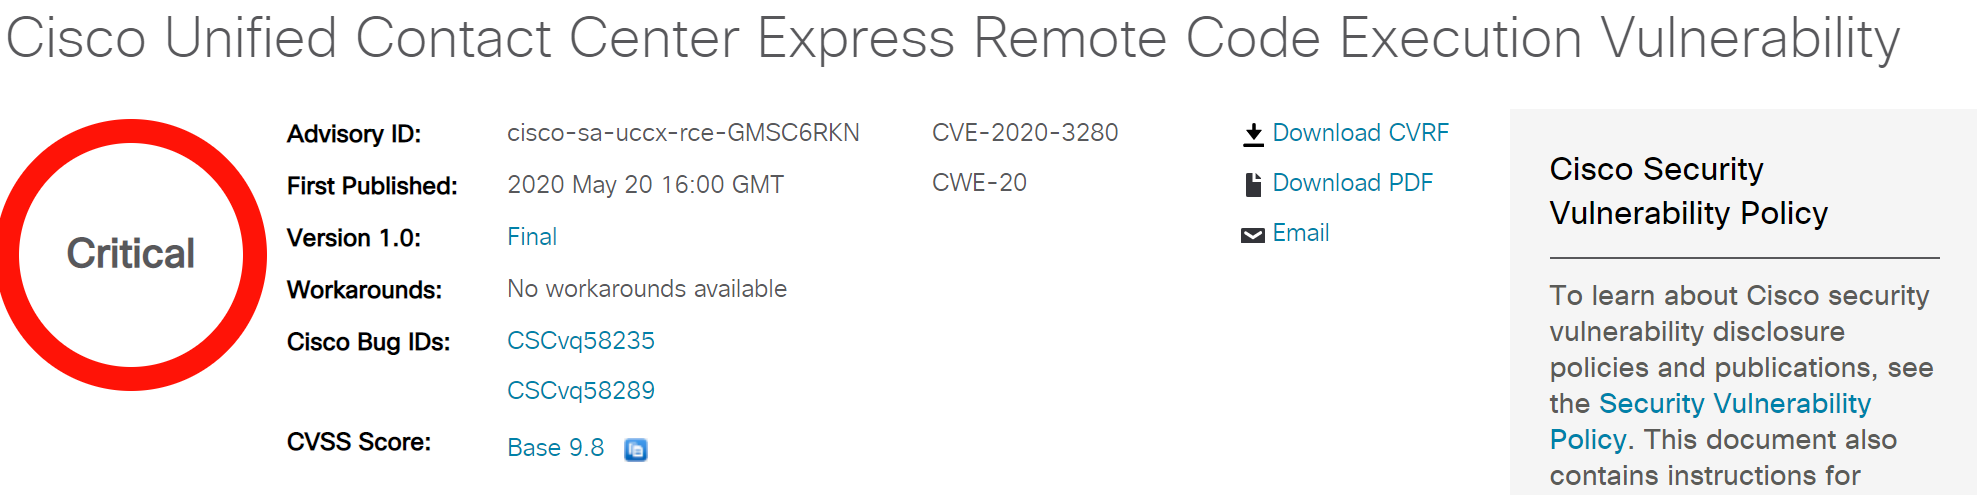 CVE-2020-3280: Cisco Unified Contact Center Express Remote Code Execution Vulnerability Alert